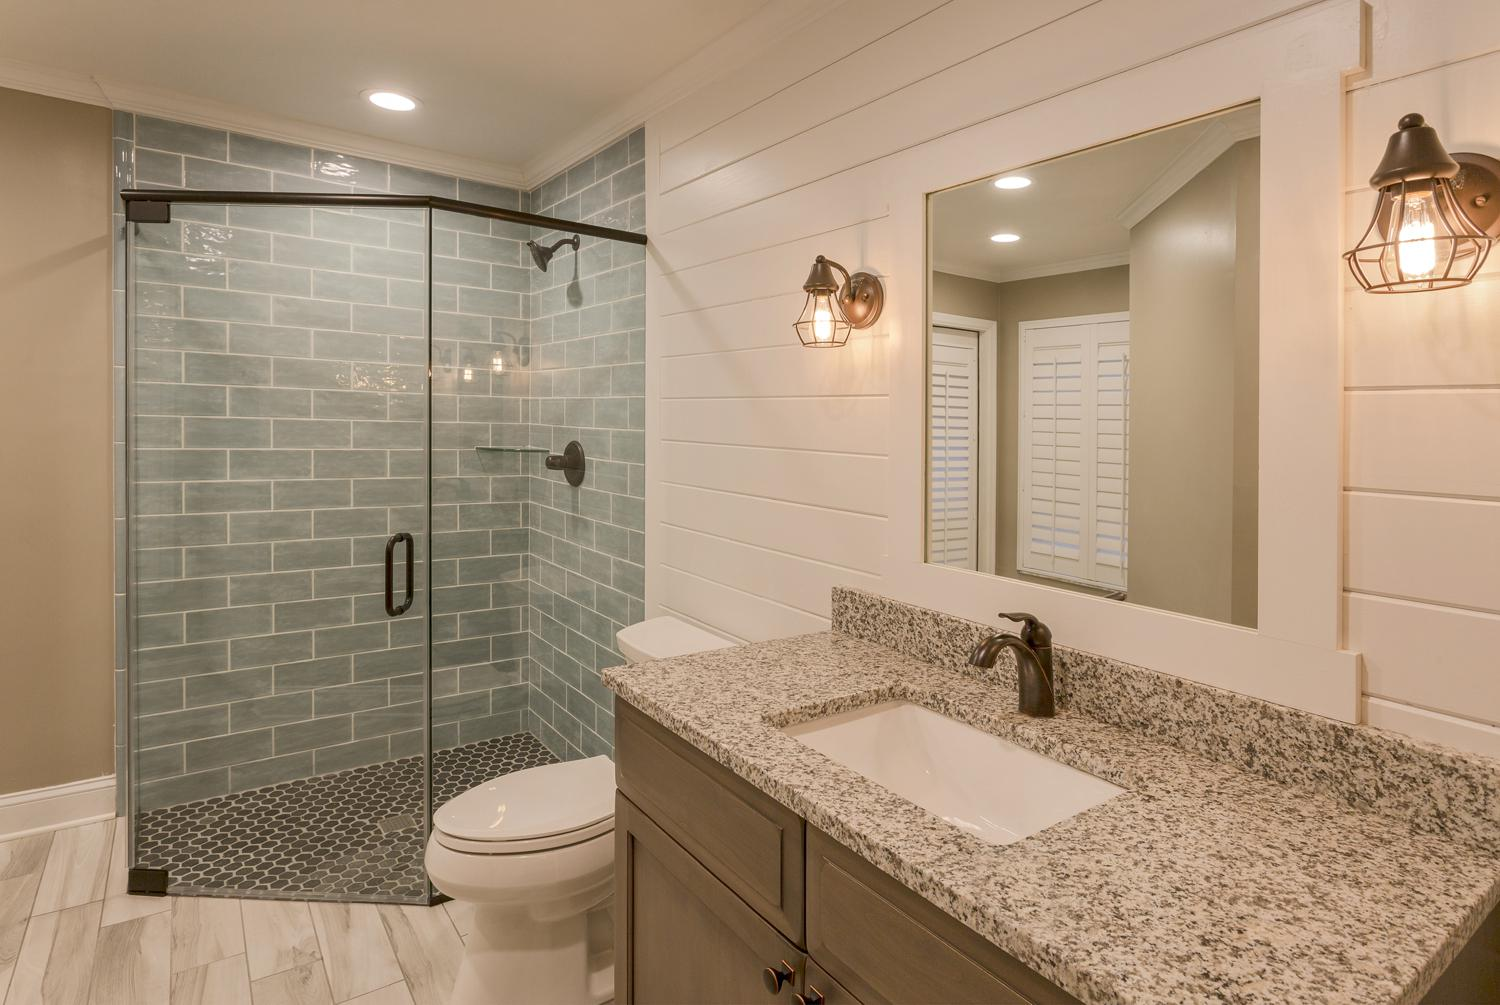 Latest remodeling projects chi contractors for Bathroom vanities clearwater fl